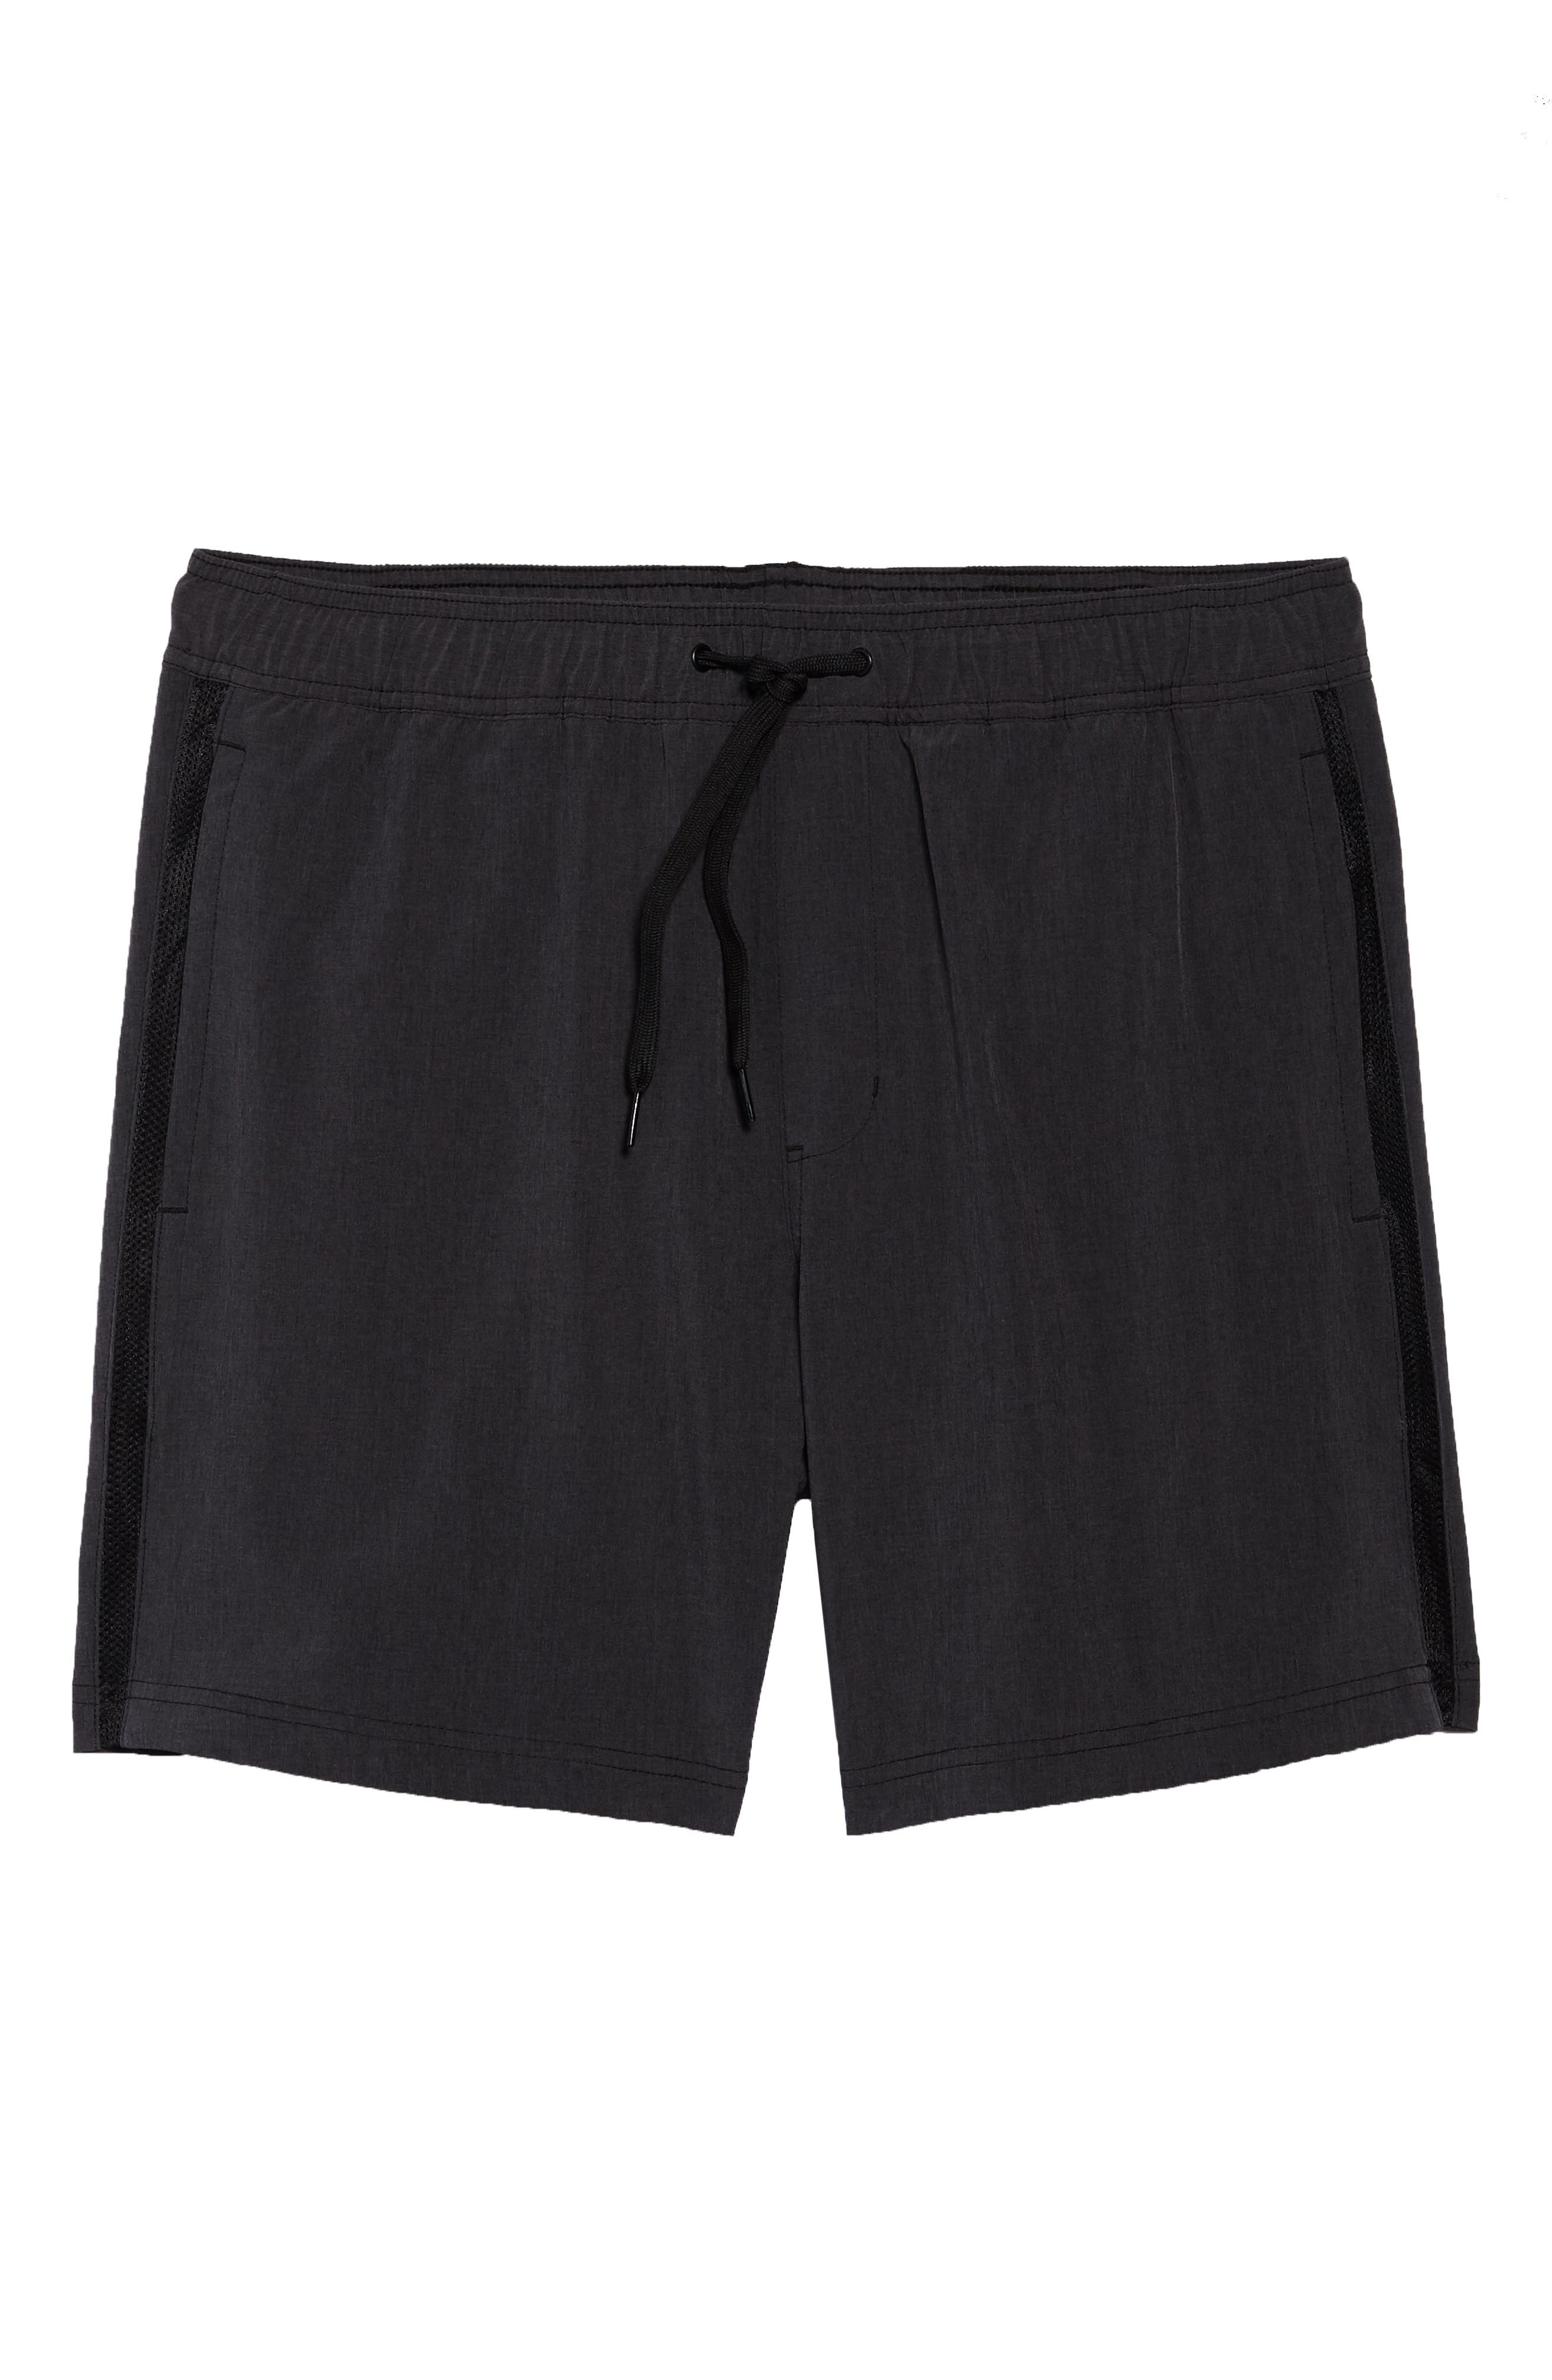 Stretch Swim Trunks,                             Alternate thumbnail 6, color,                             Black Oxide Heather